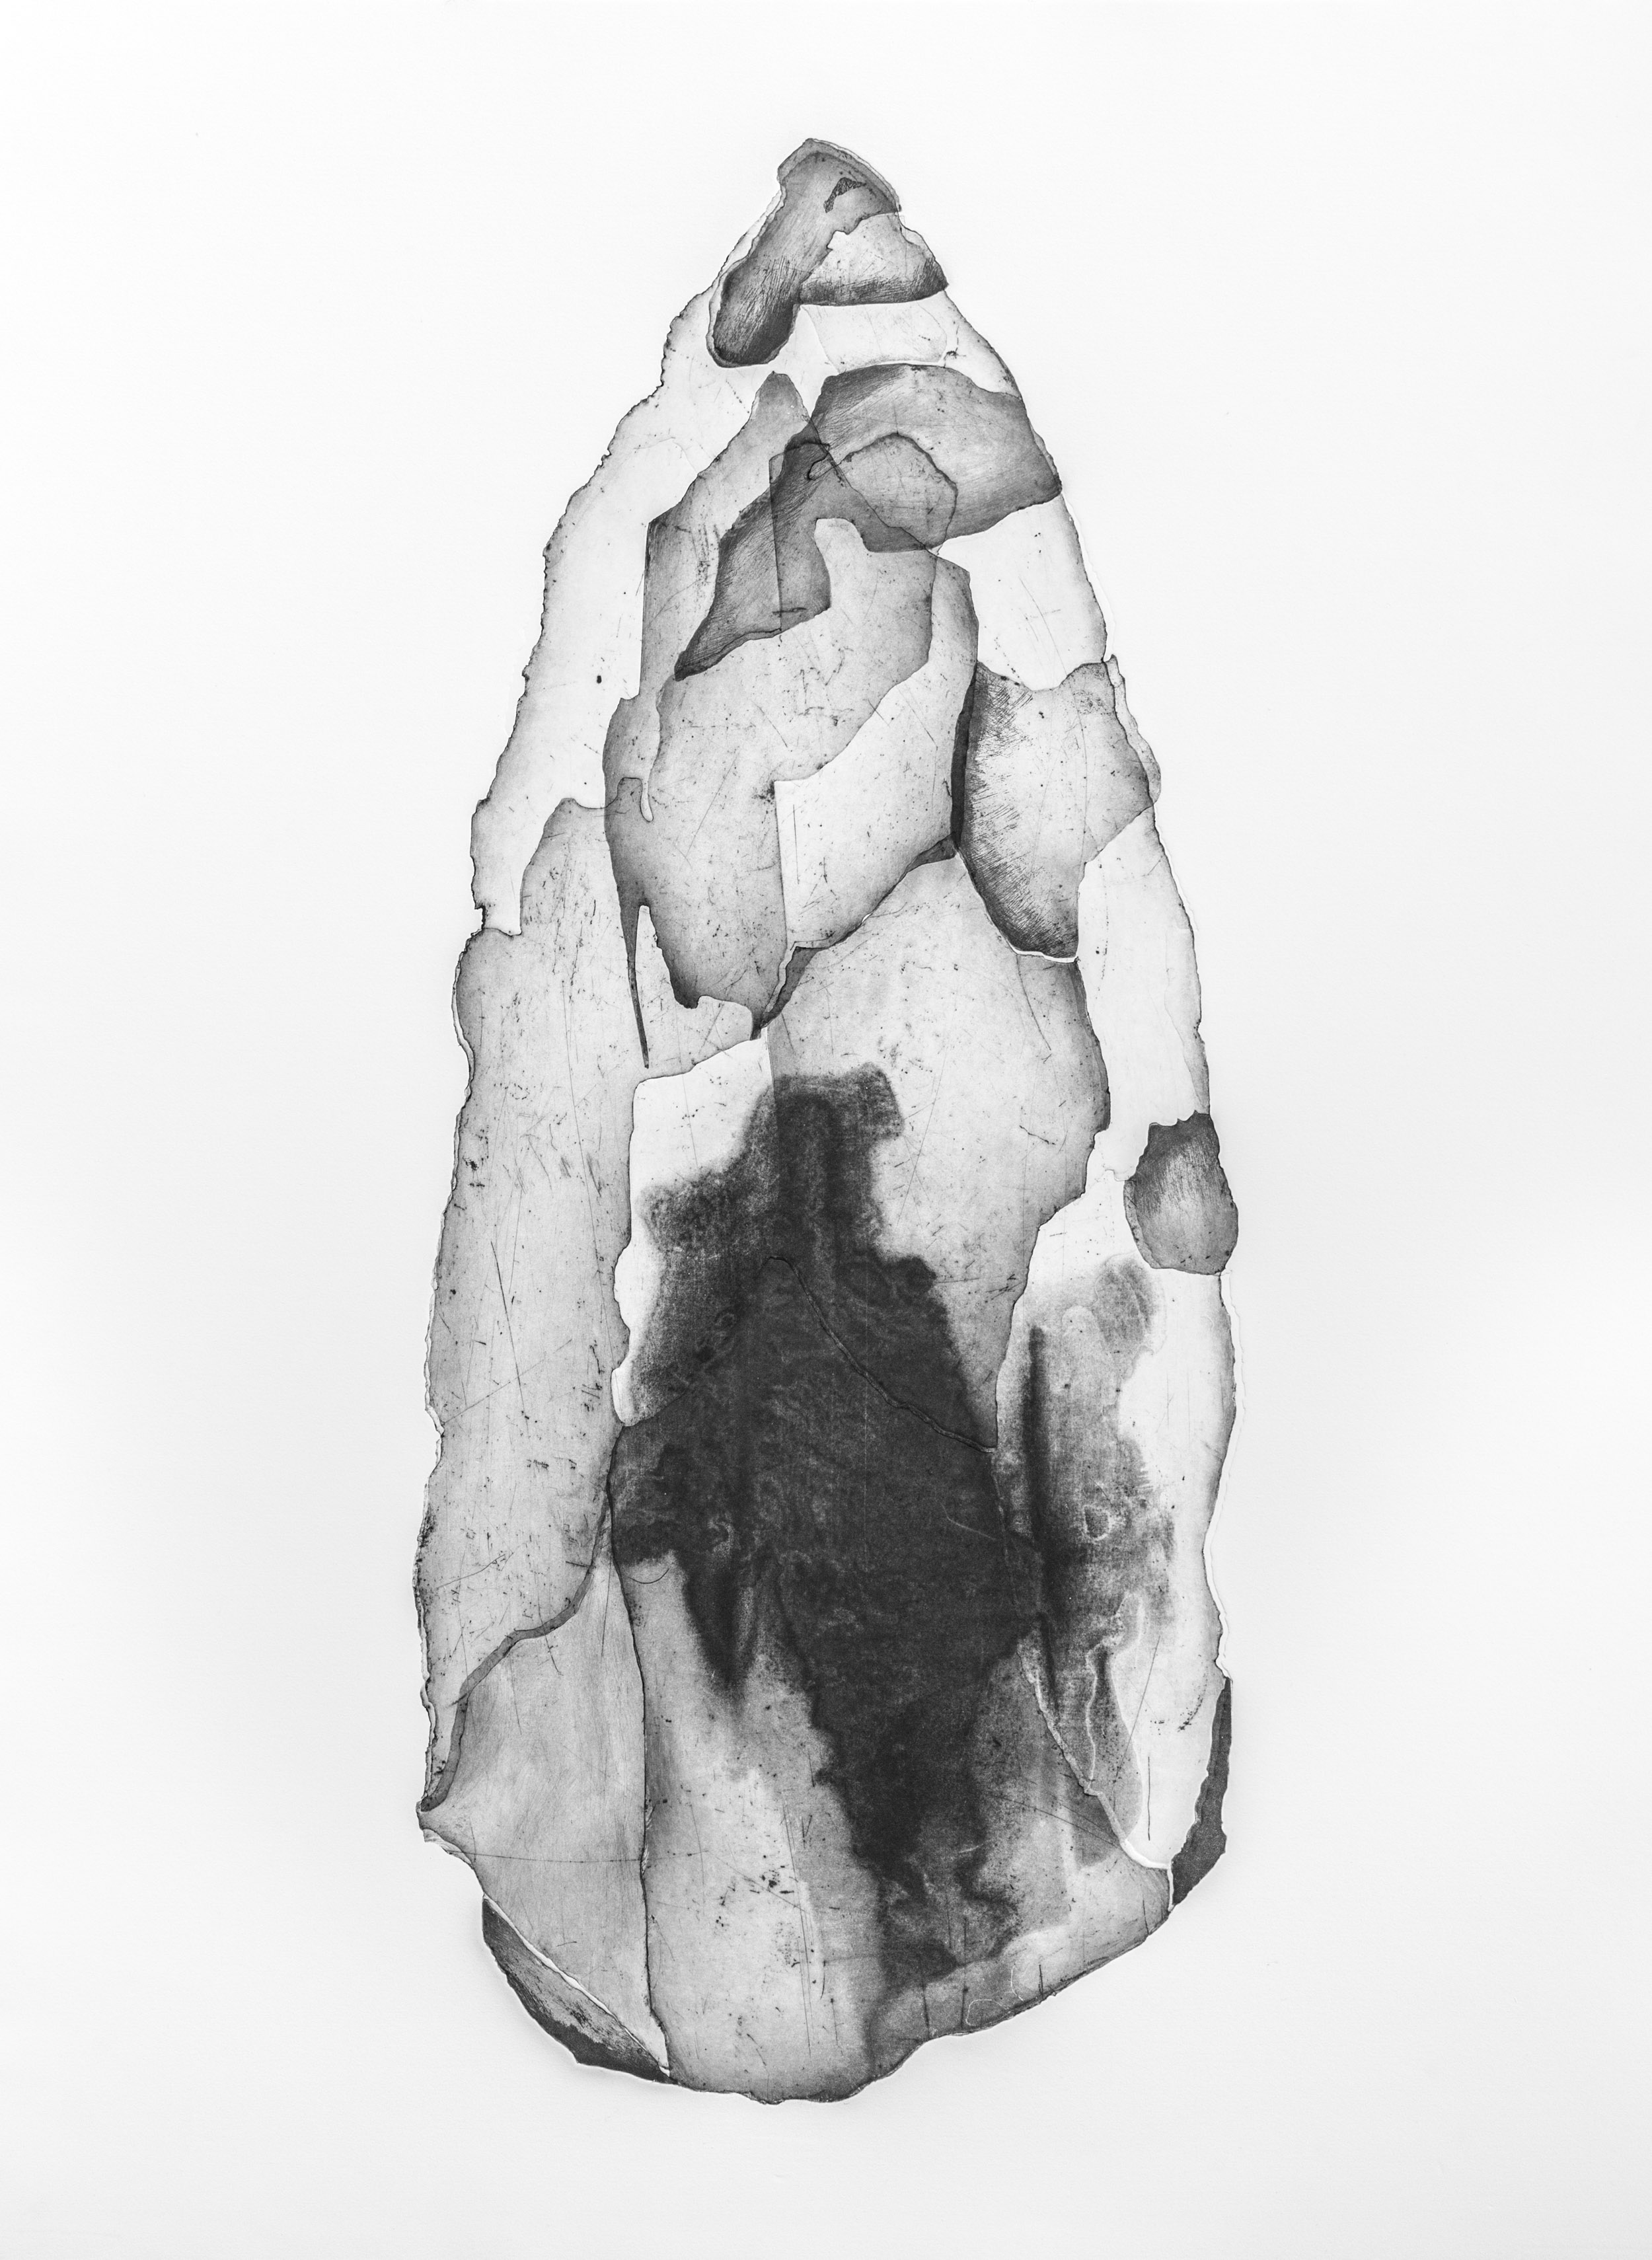 WORRORRA STONE TOOL, VIC COX COLLECTION  monoprint, 300 gsm Hahnemuhle paper, 78 x 106 cm, Dec 2017